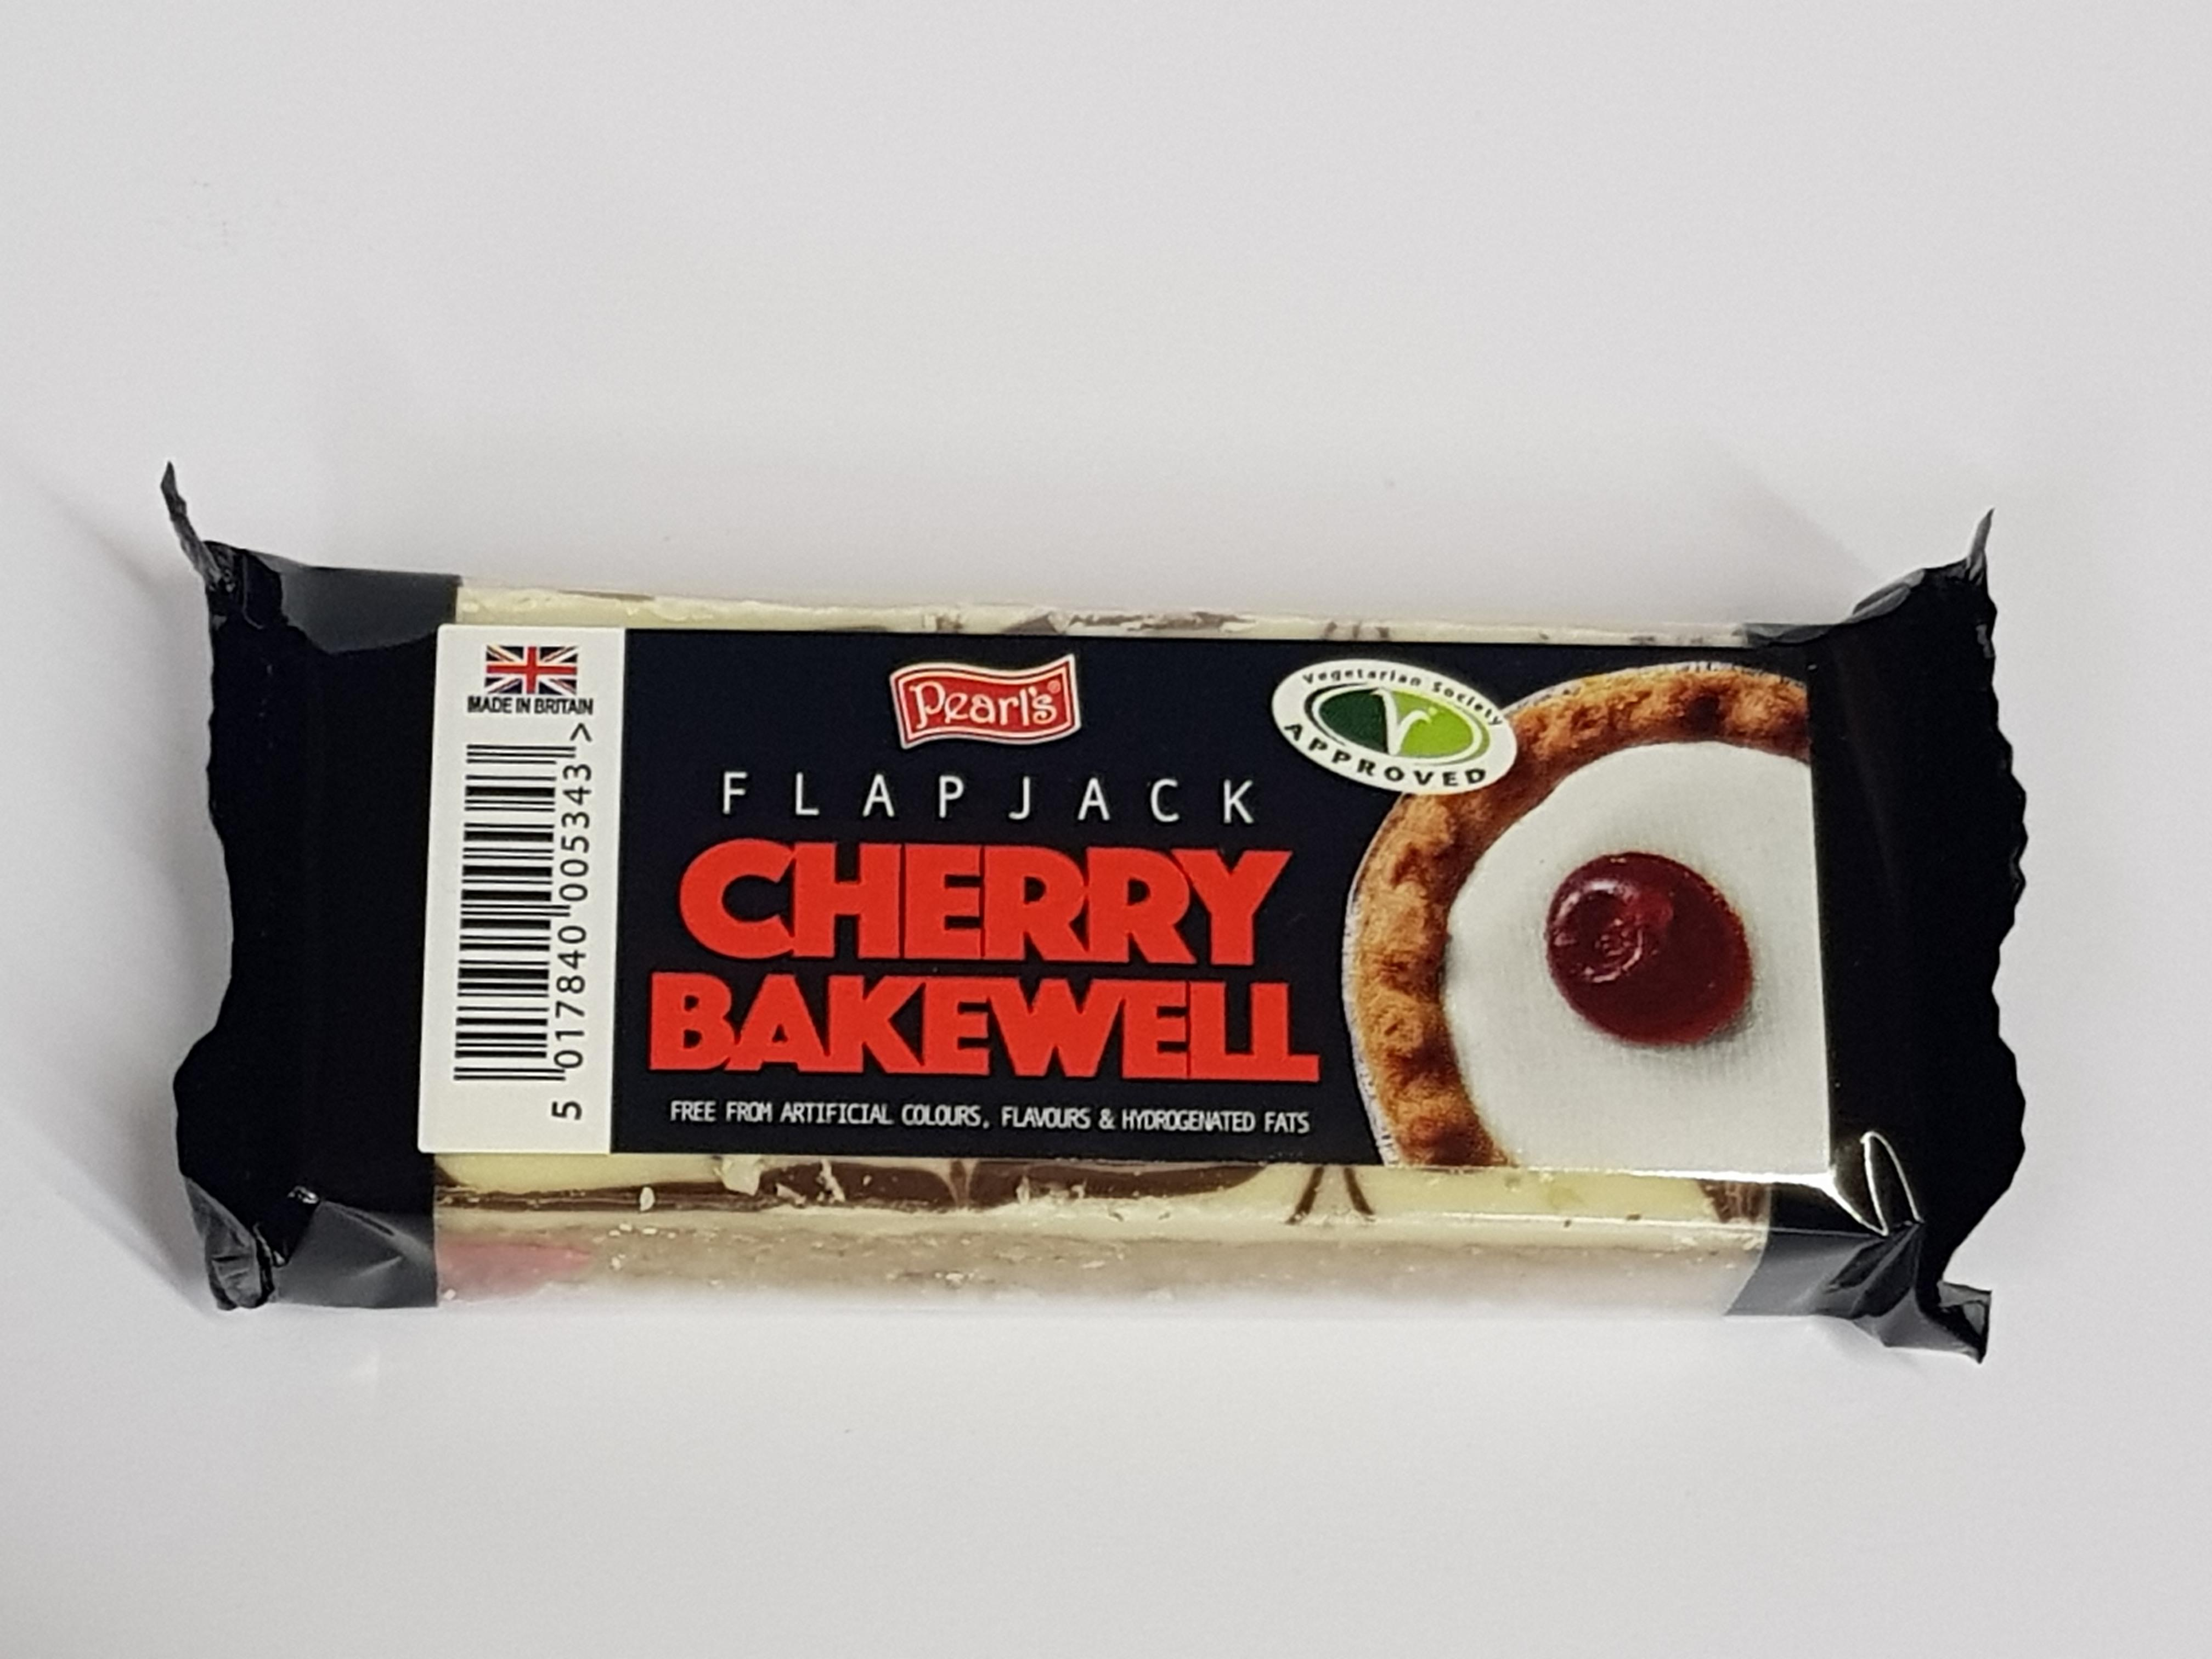 Pearls Cherry Bakewell Flapjack